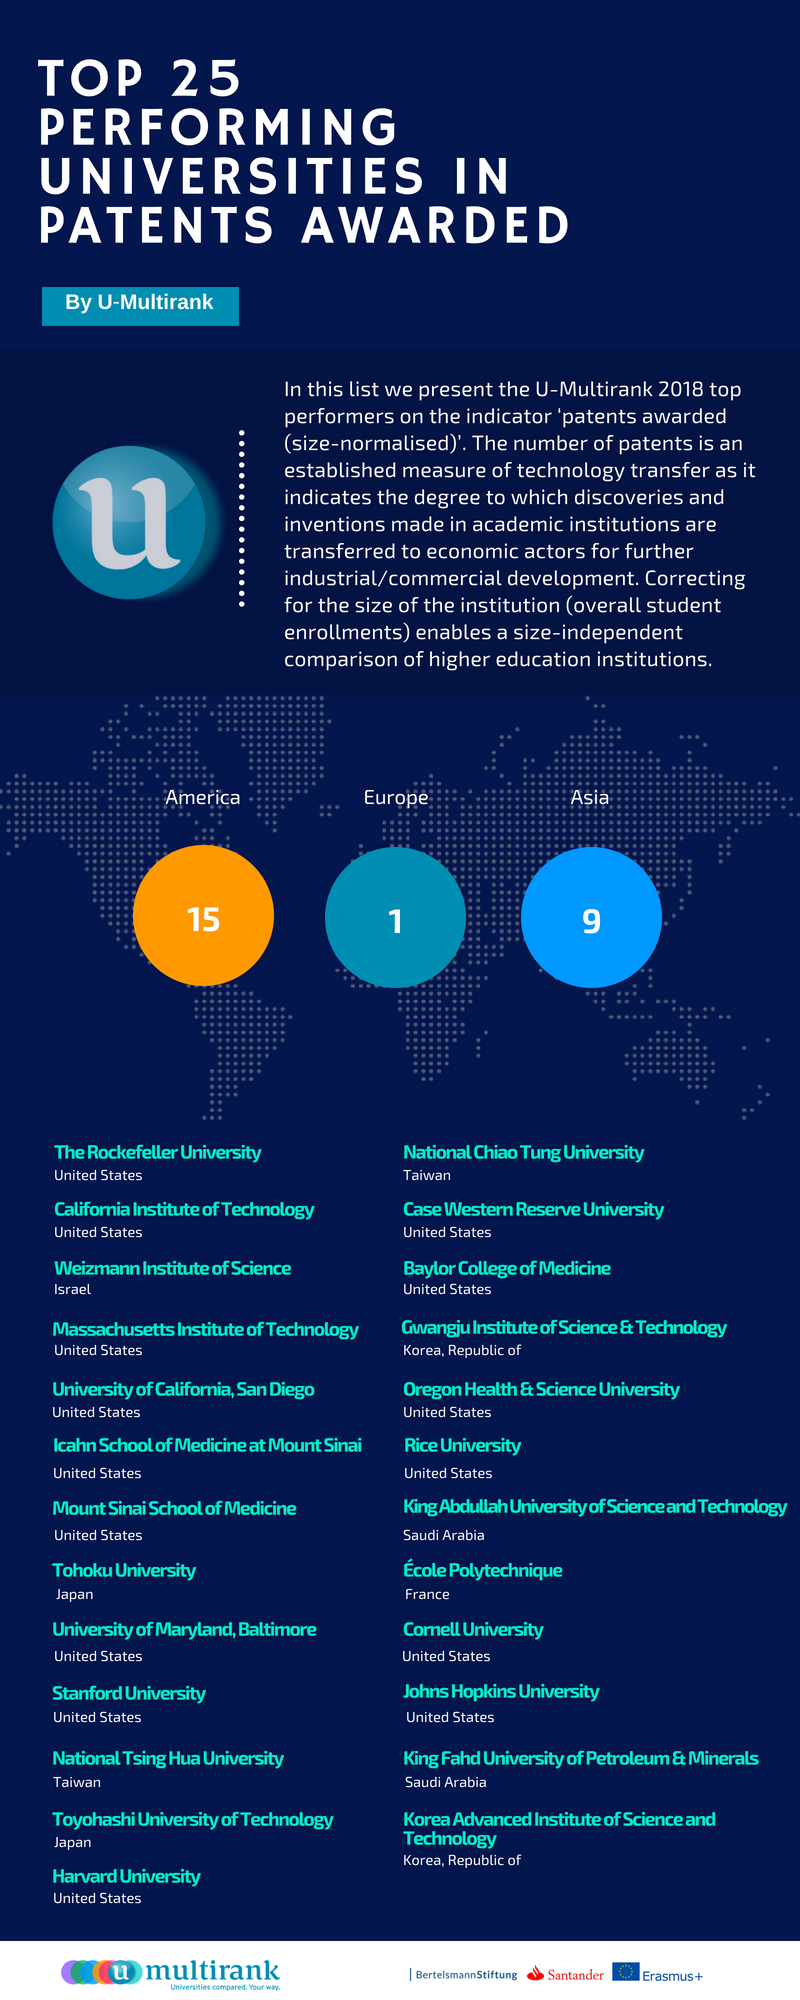 Top 25 Universities in Patents Awarded